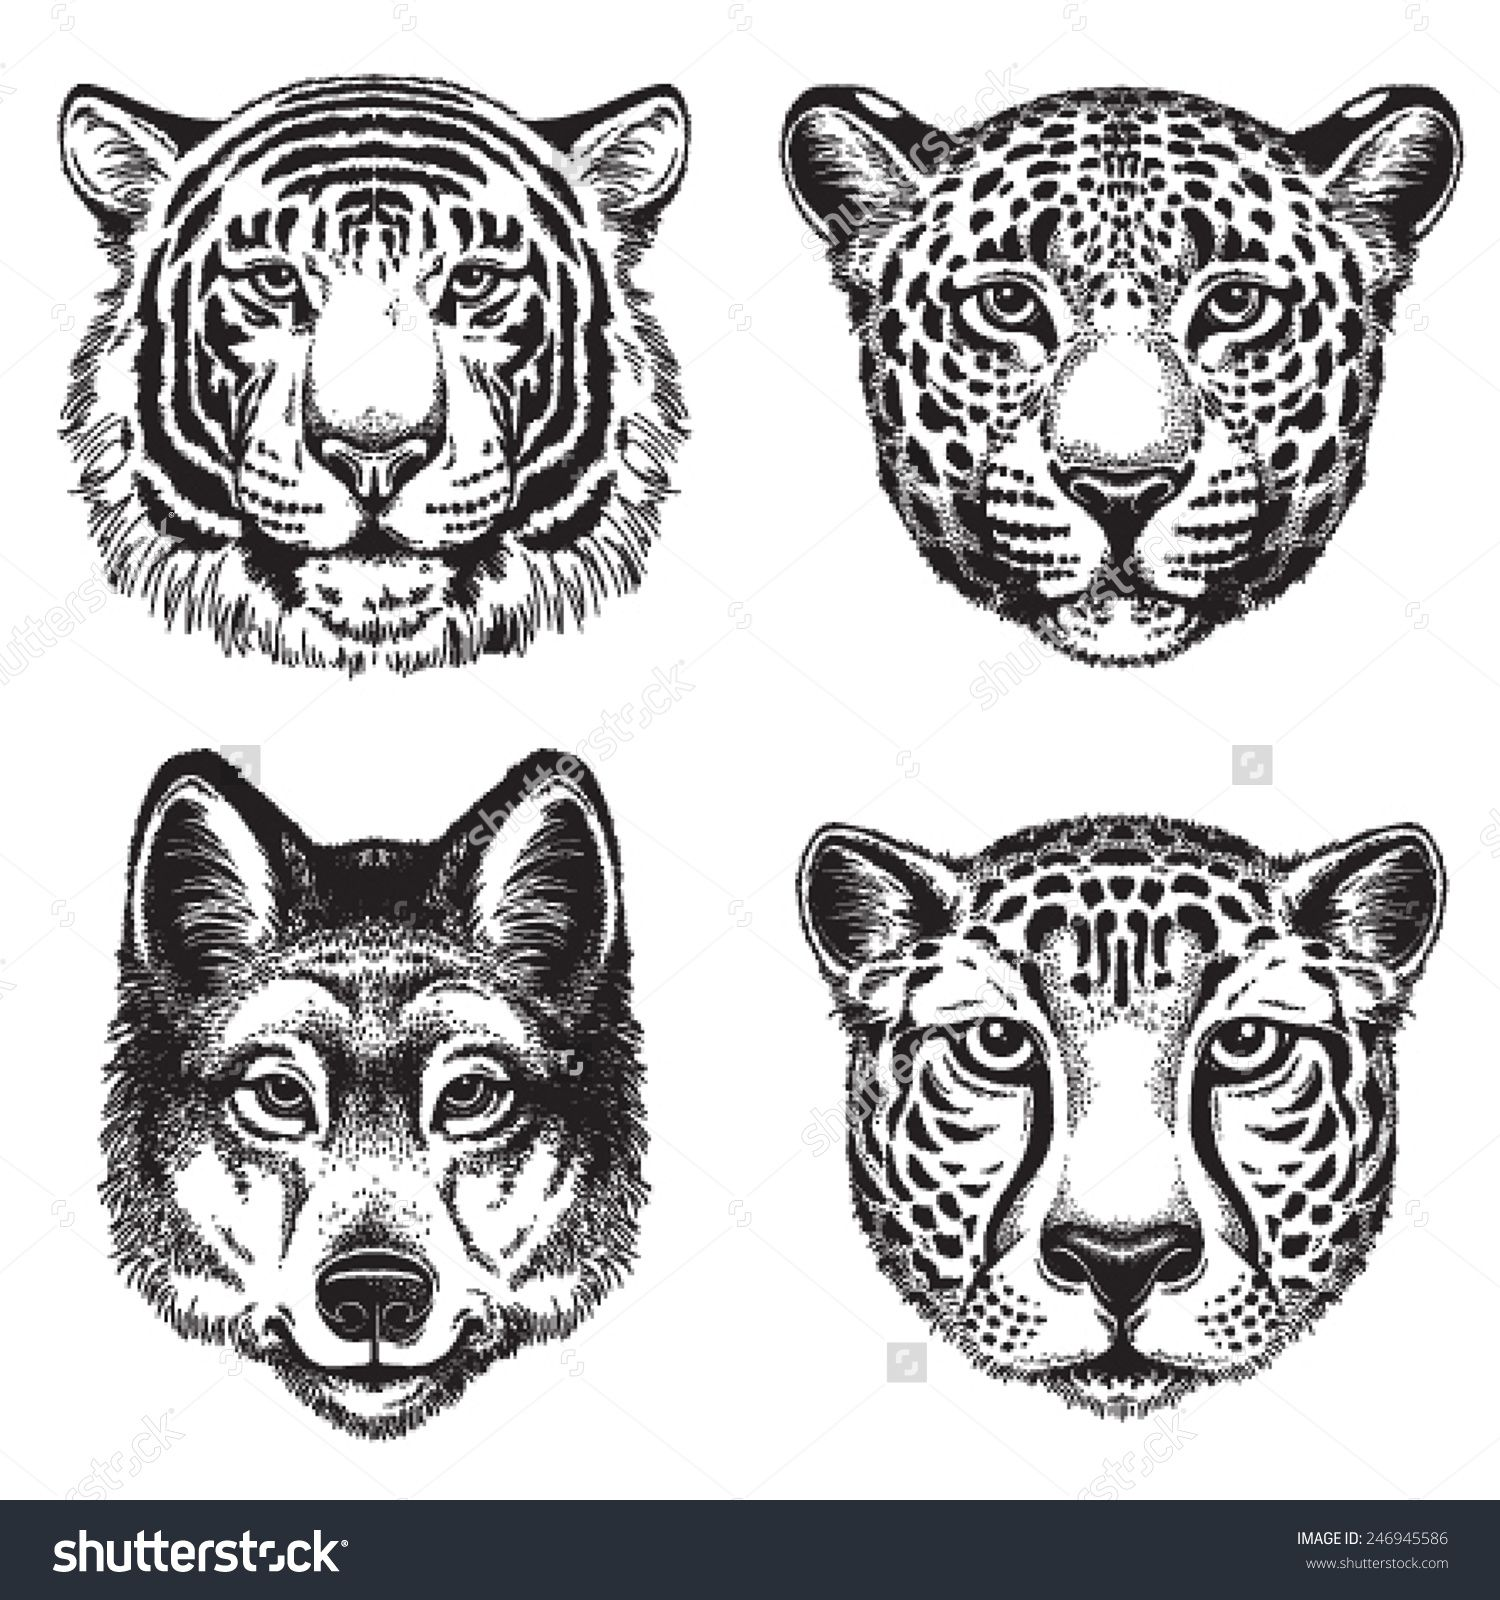 1500x1600 Black And White Vector Line Drawings Of Wild Animal Faces Cheetah